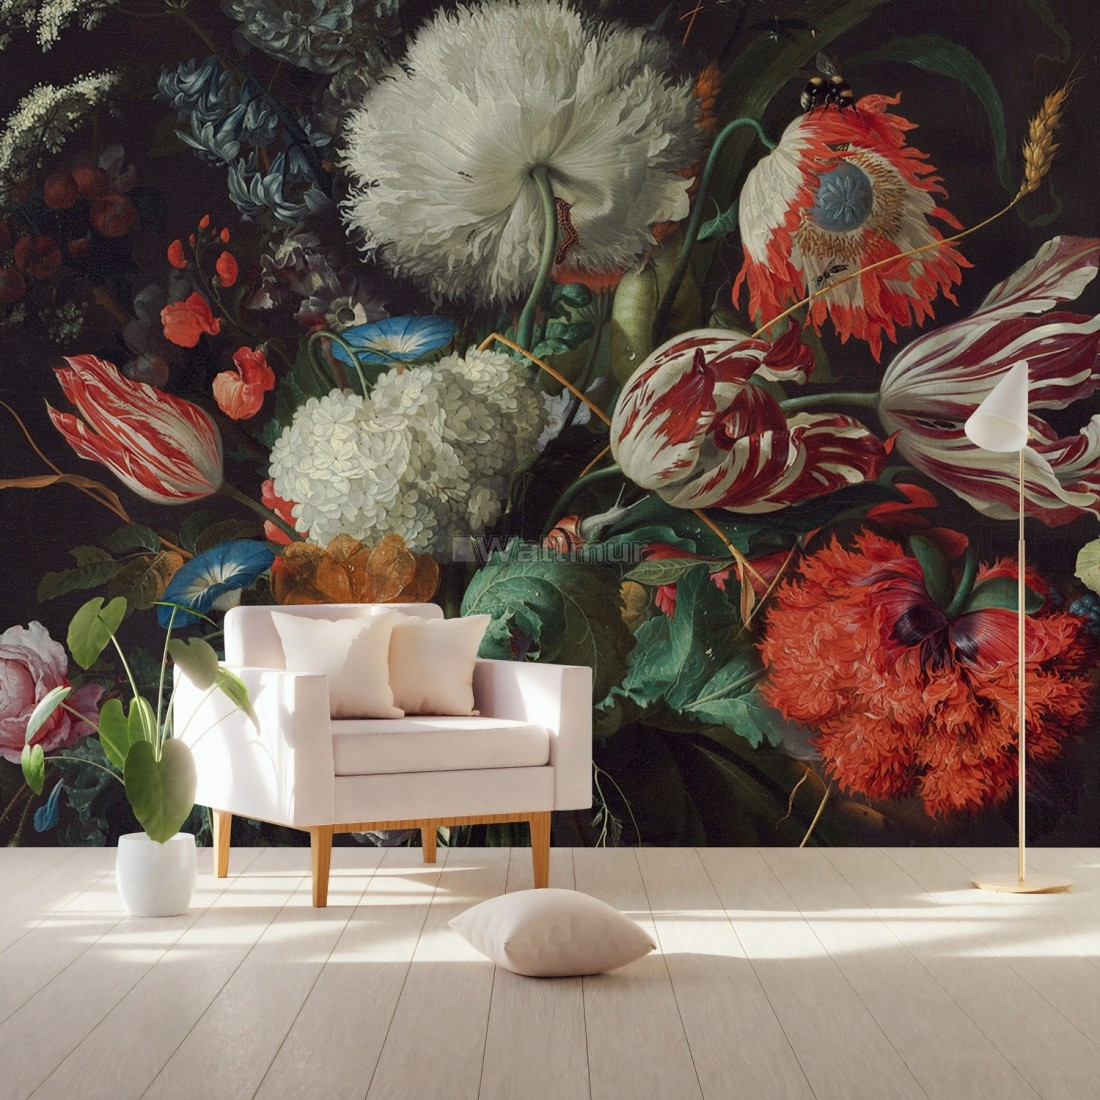 Dark Floral Bouqet With Tulips Wallpaper Mural